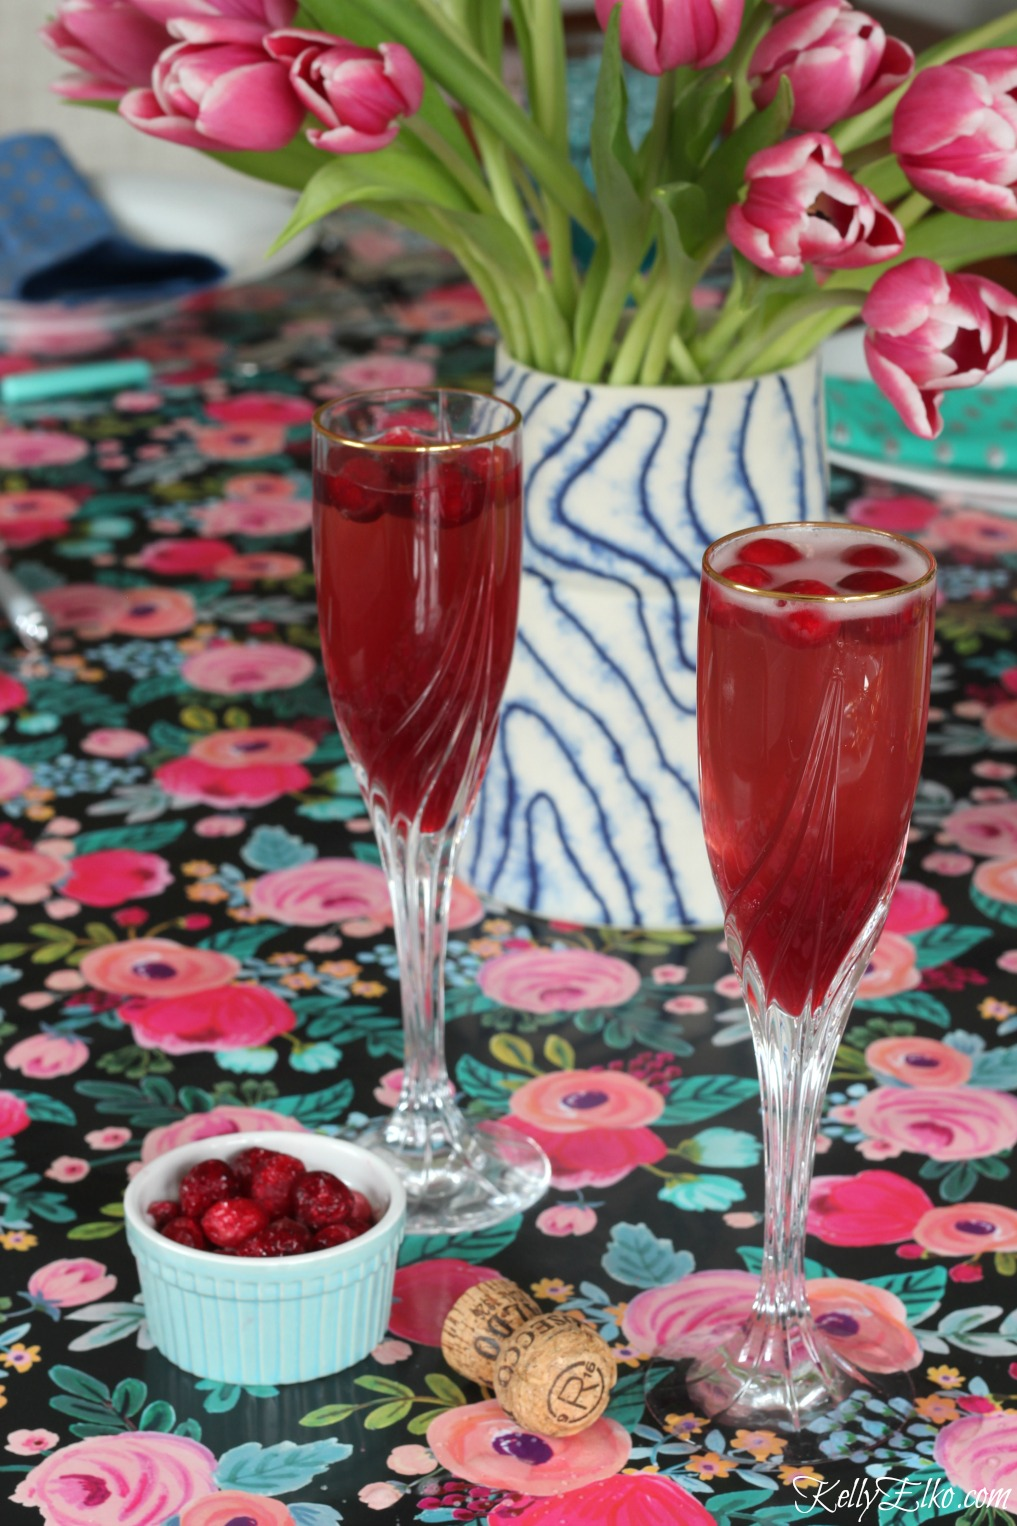 Cranberry Fizz Cocktail Recipe: It's 5 O'Clock Somewhere